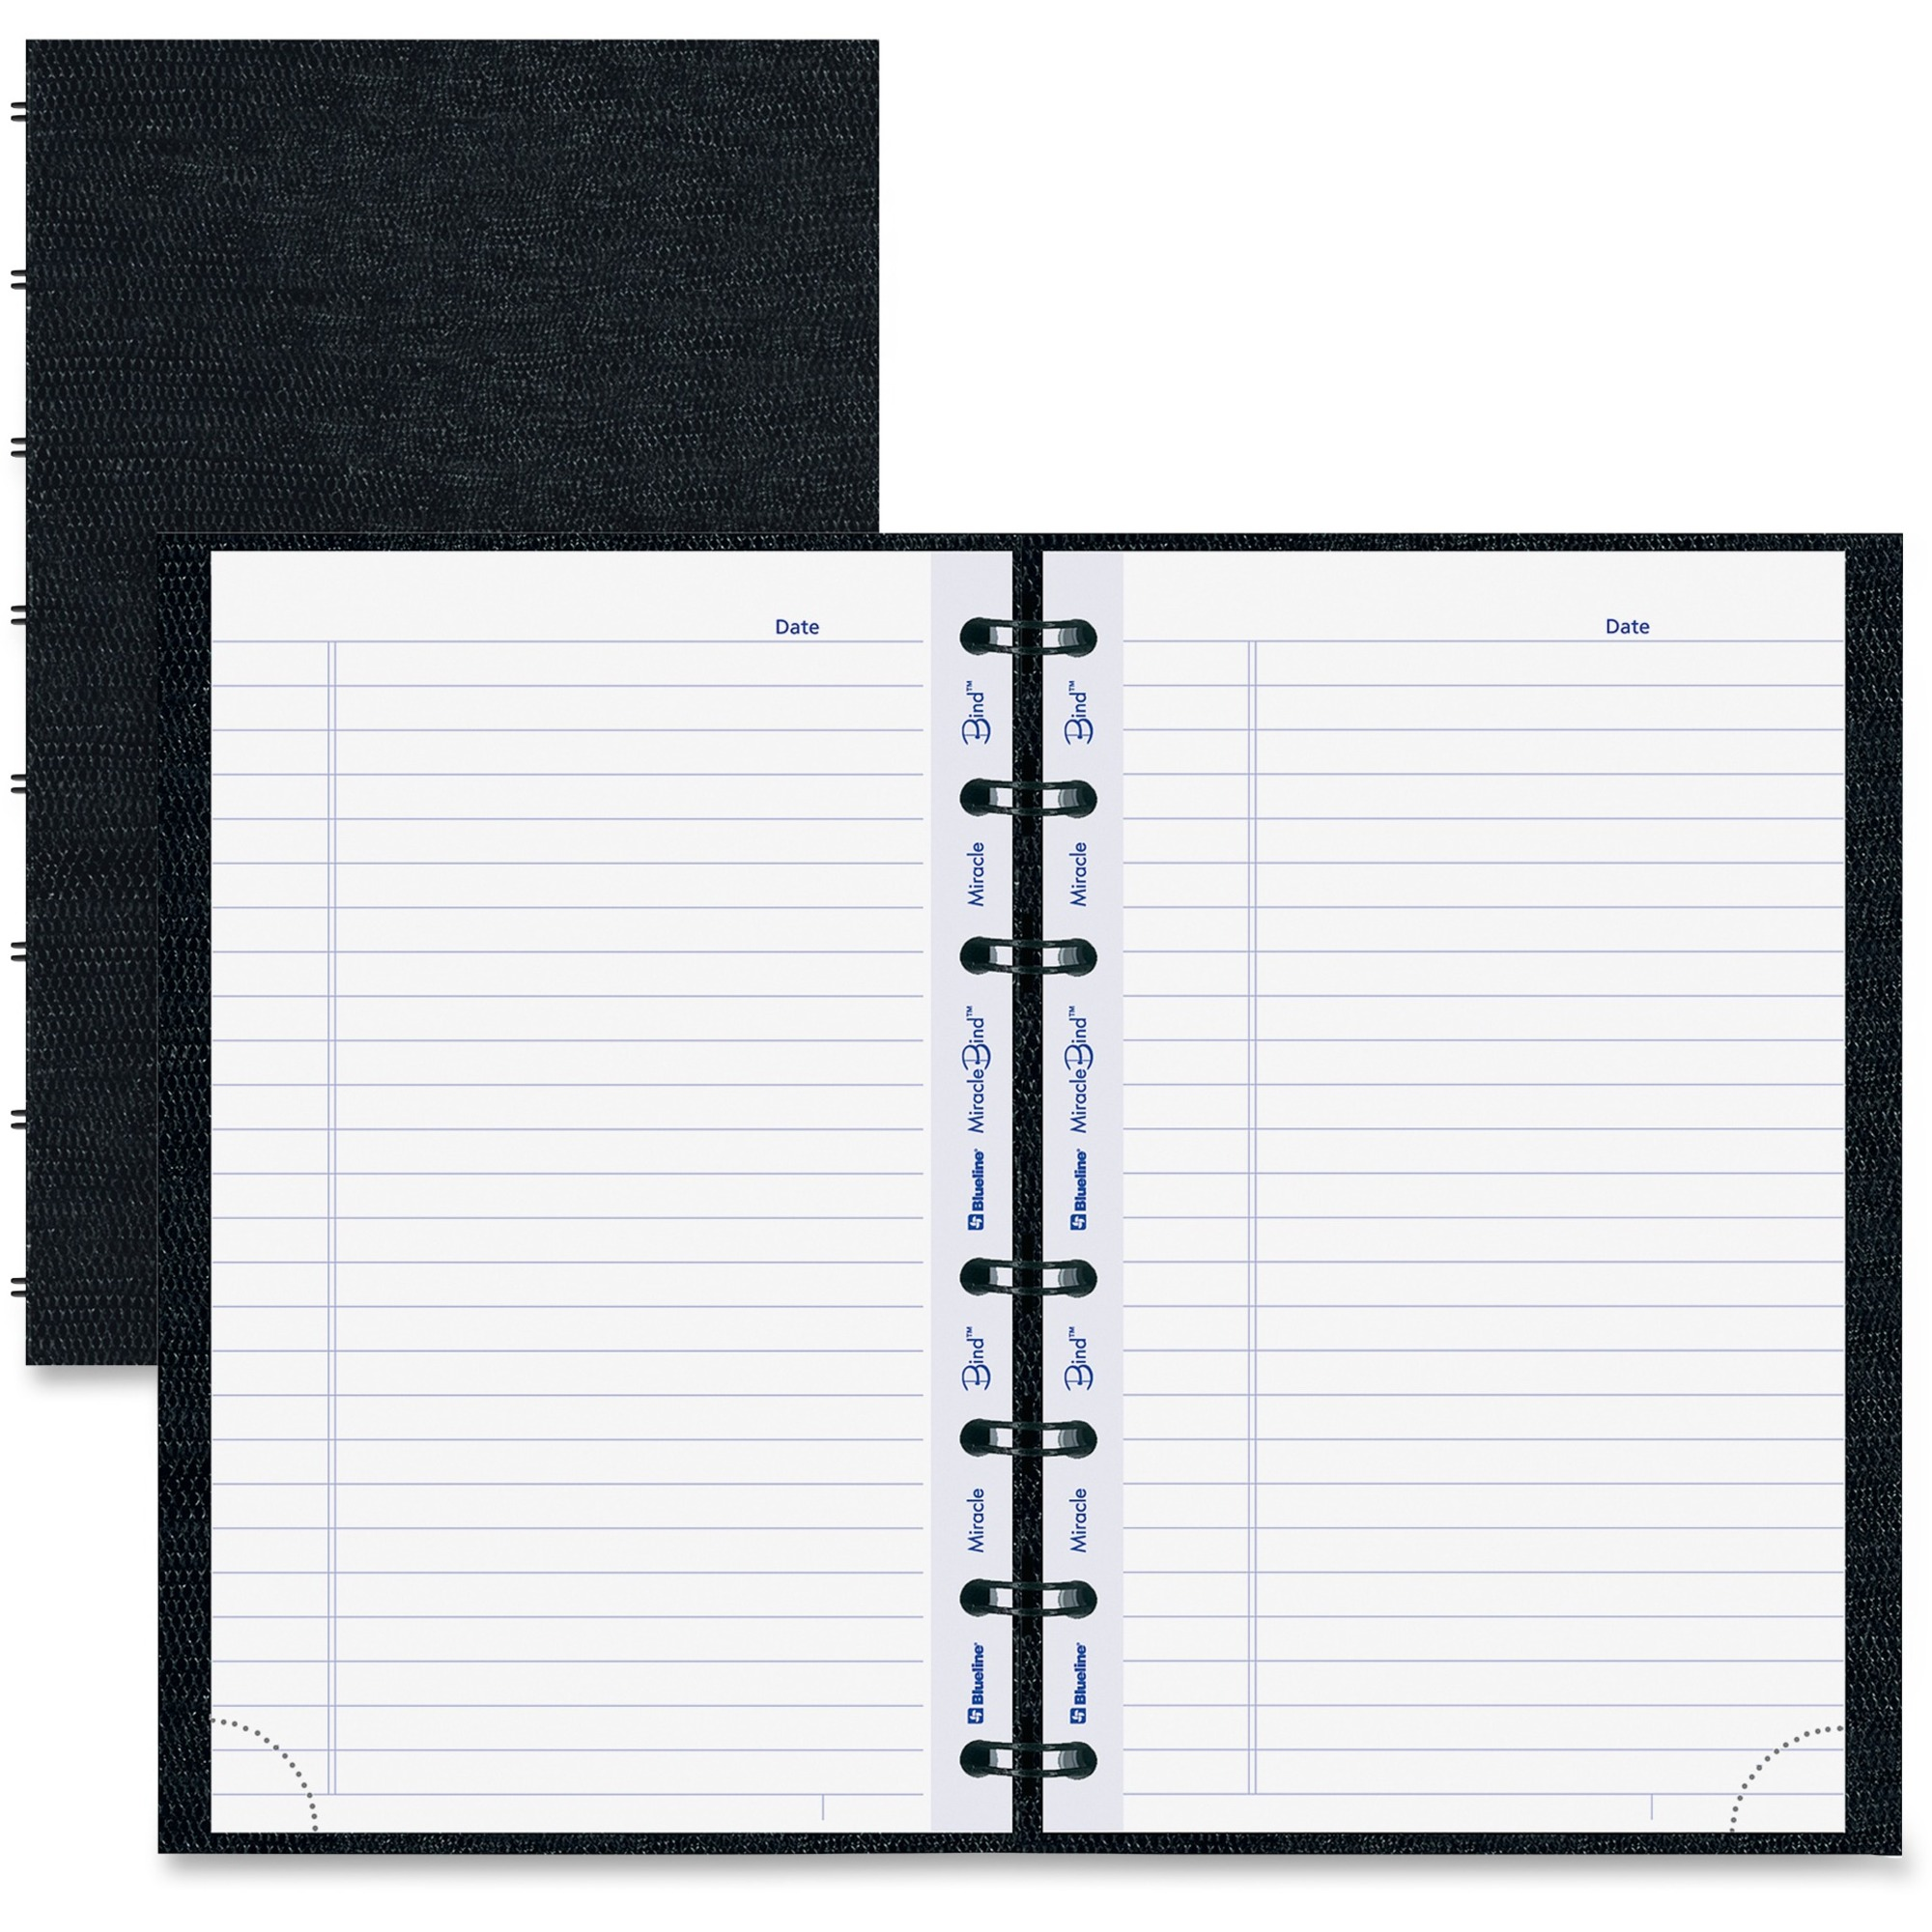 "Blueline MiracleBind College Ruled Notebooks - 150 Pages - Twin Wirebound -  Ruled - 8"" x 5"" - Black Cover Ribbed - Hard Cover, Removable,  Repositionable, ..."